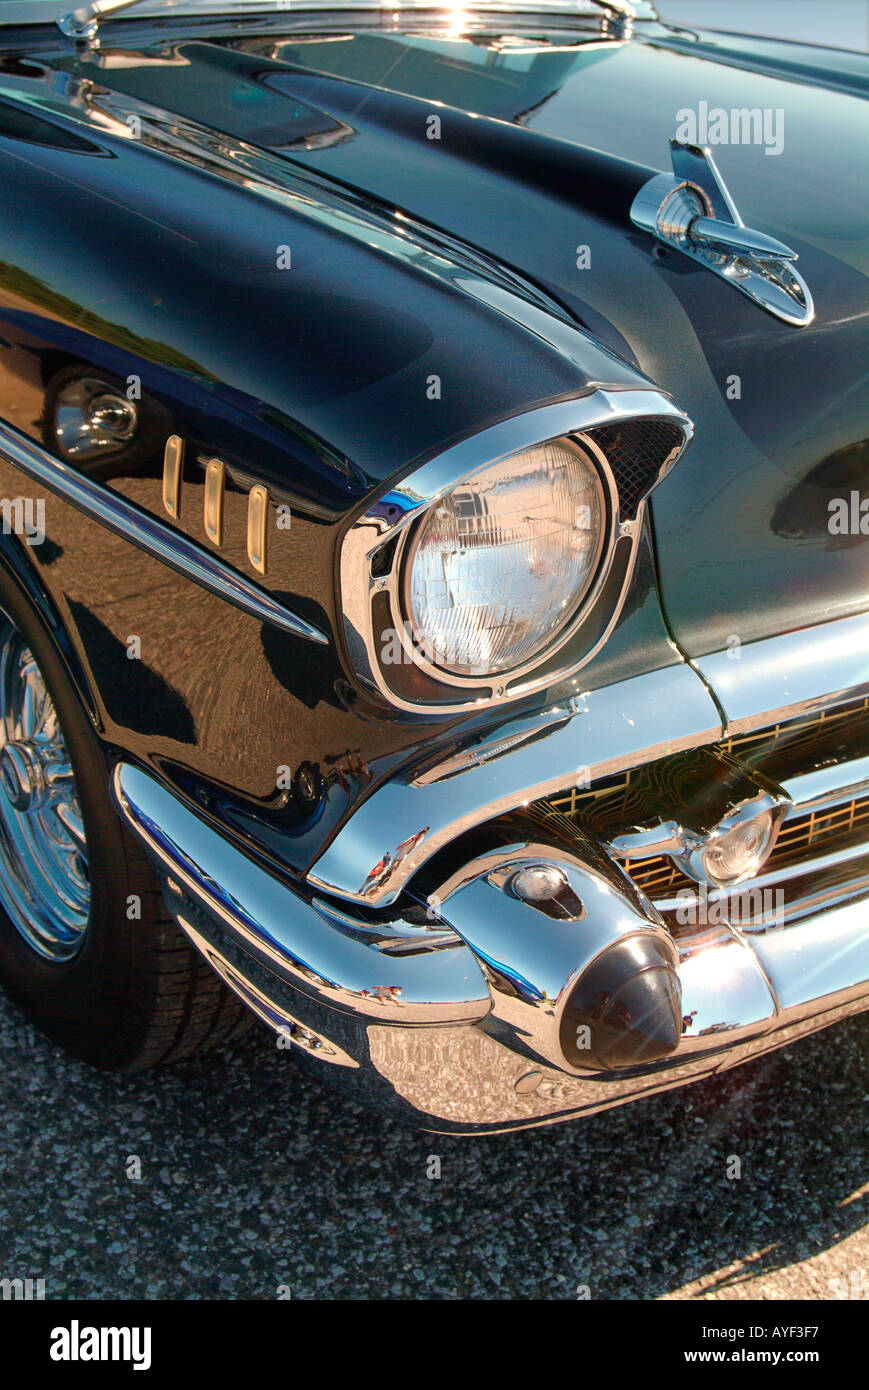 A detail of a black 57 Chevy Belair restored car - Stock Image